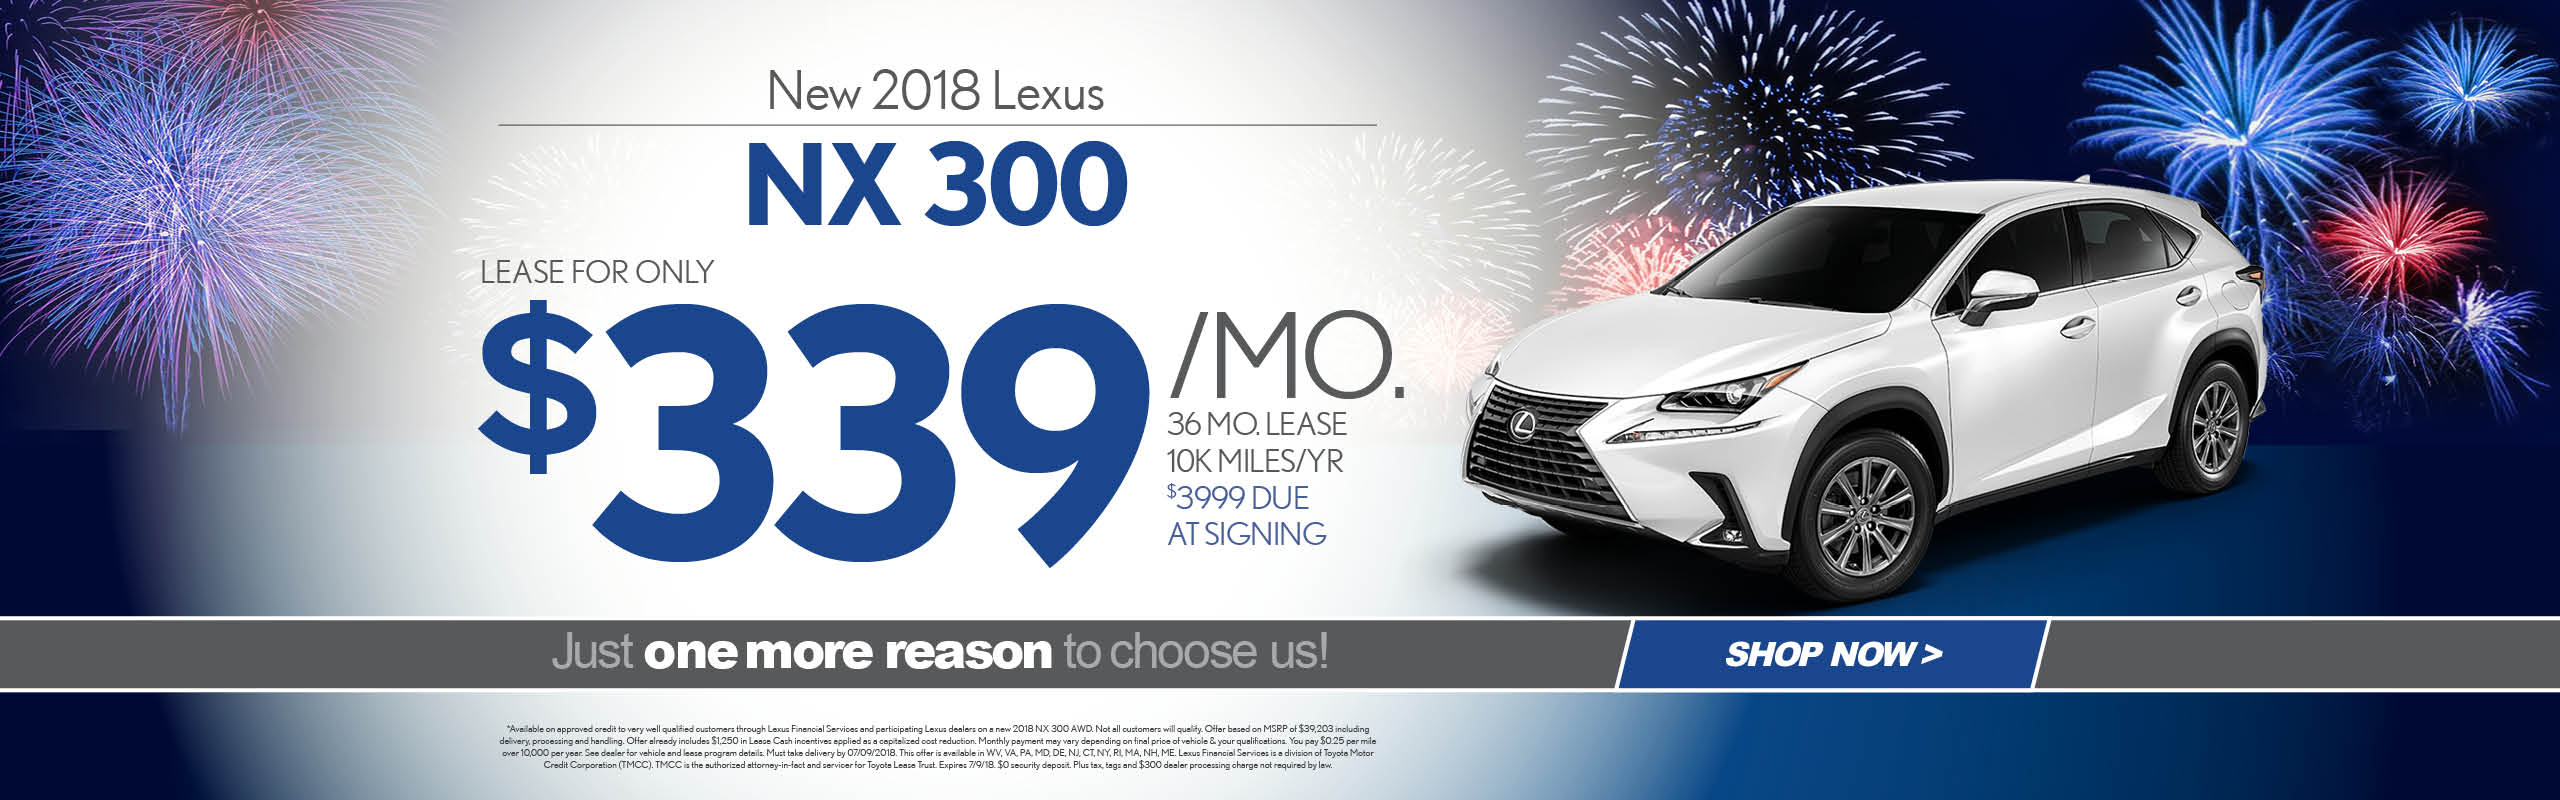 dealers country of md in sales westport connecticut new lexus